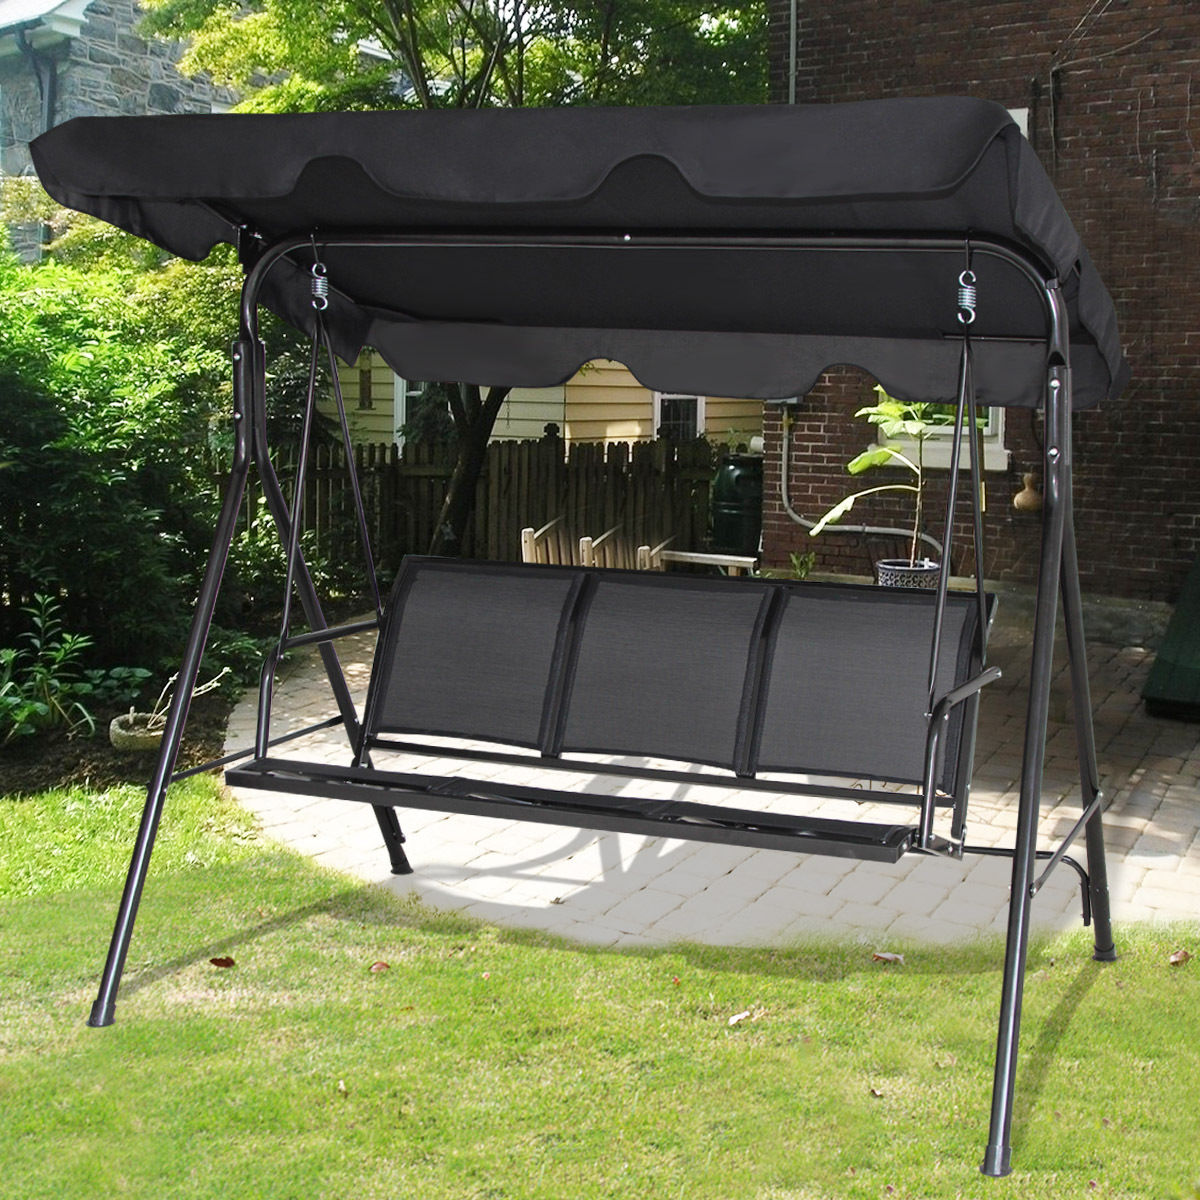 Gymax Black Outdoor Swing Canopy Patio Swing Chair 3 Person Canopy Hammock - Walmart.com : patio swings with canopy - thejasonspencertrust.org